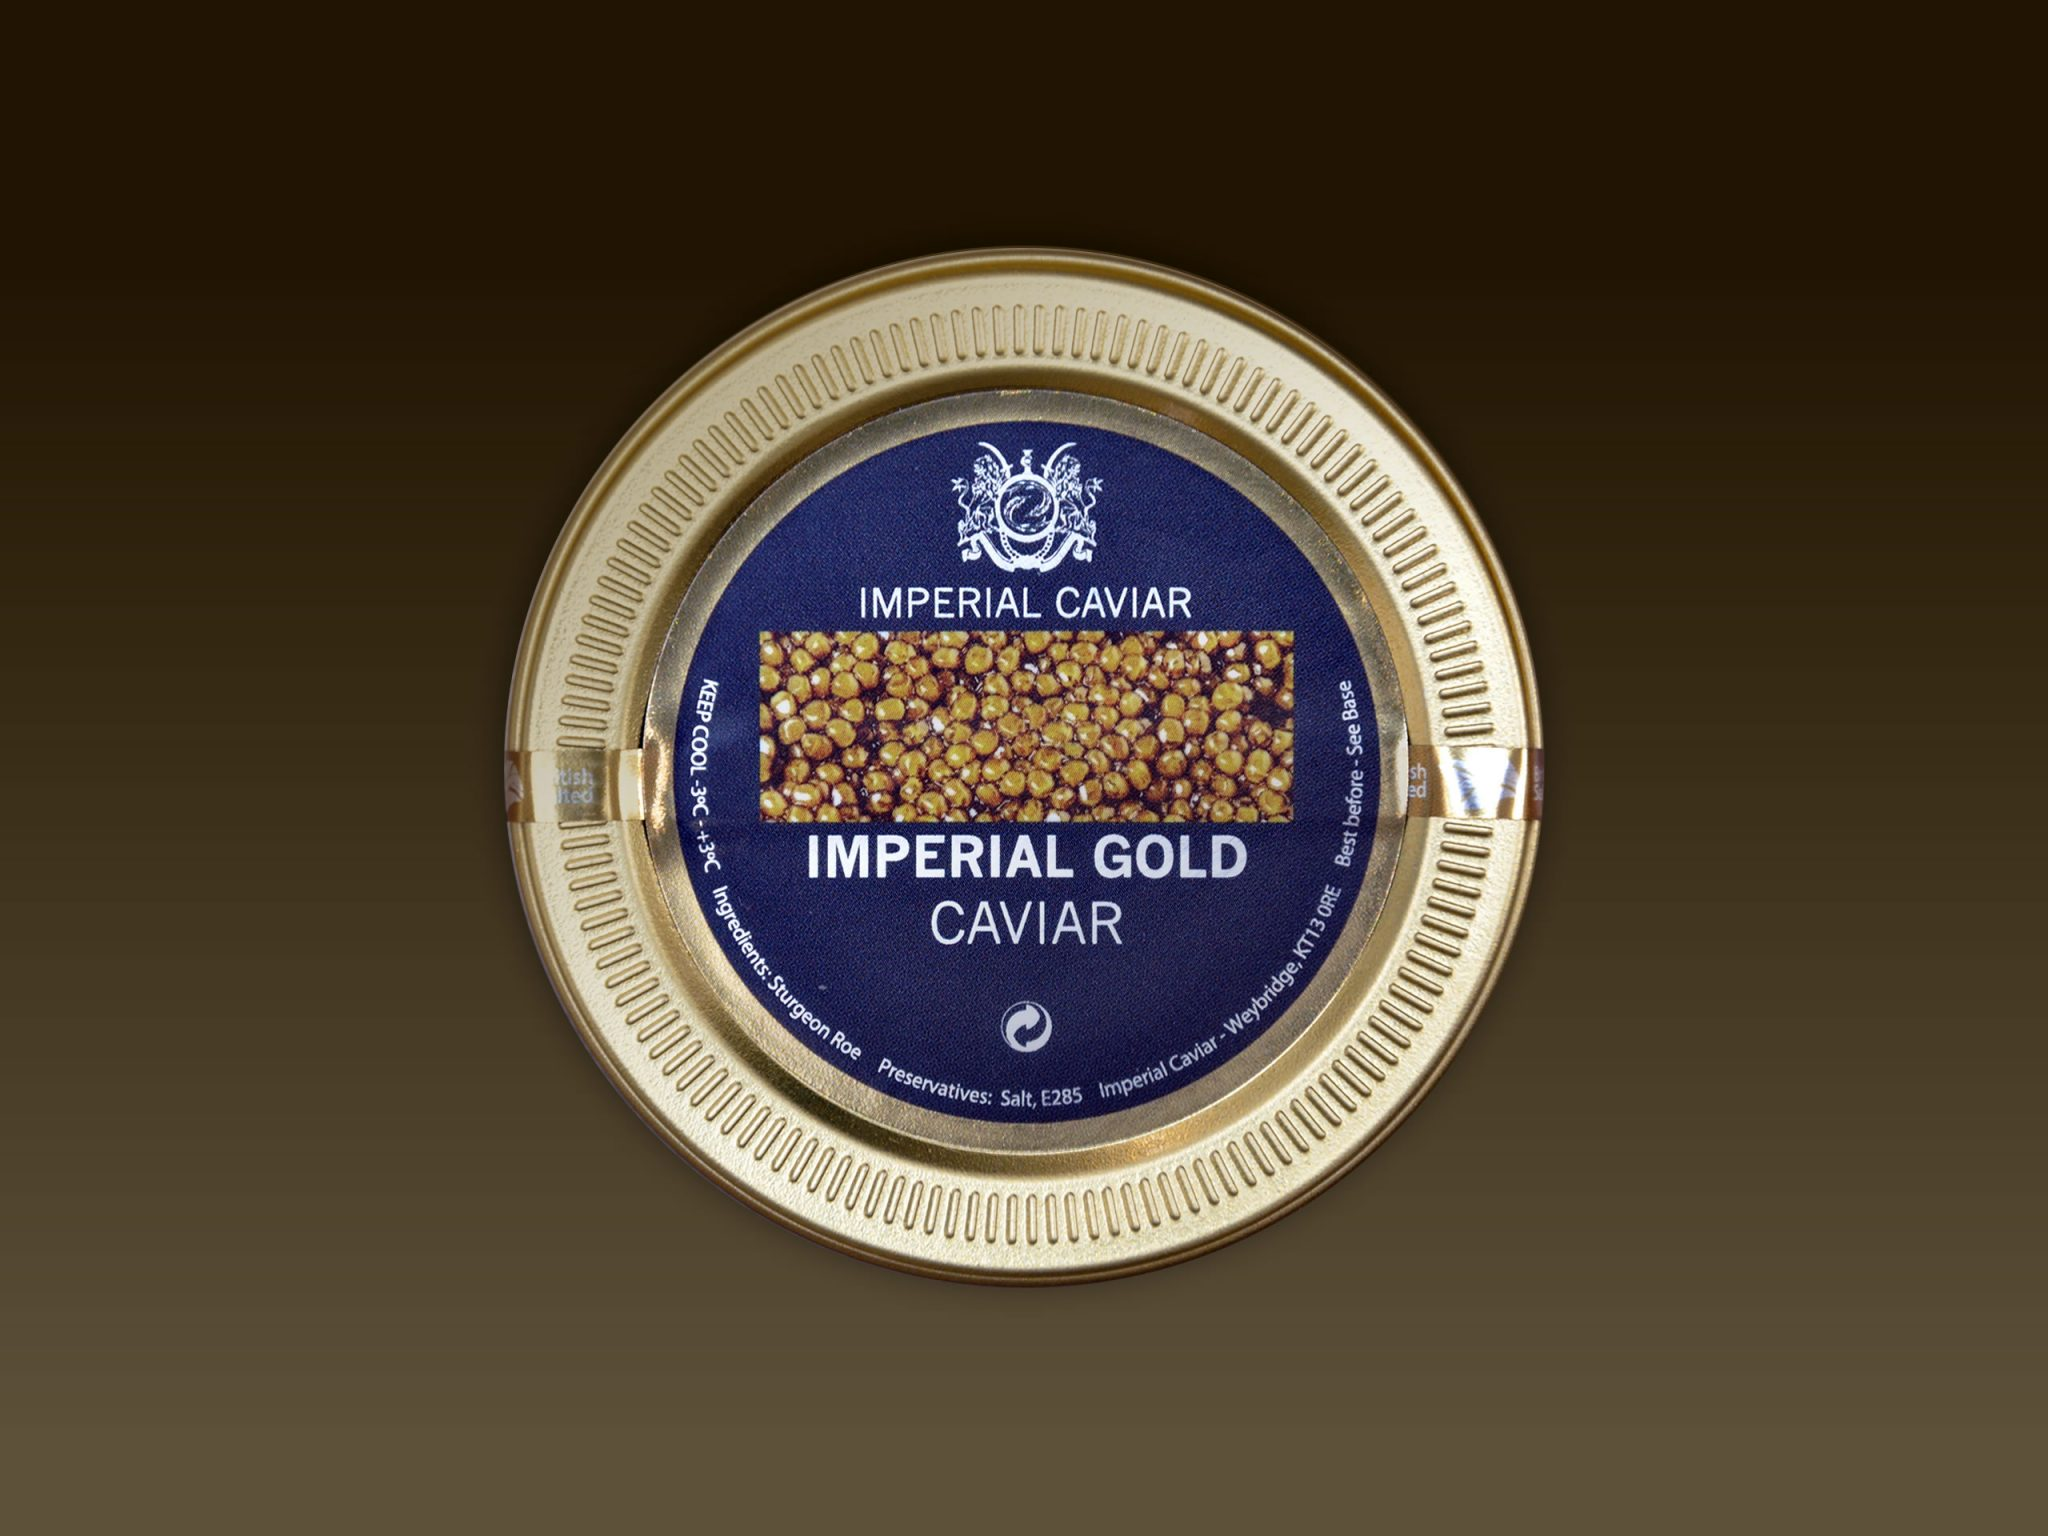 Imperial Gold Caviar